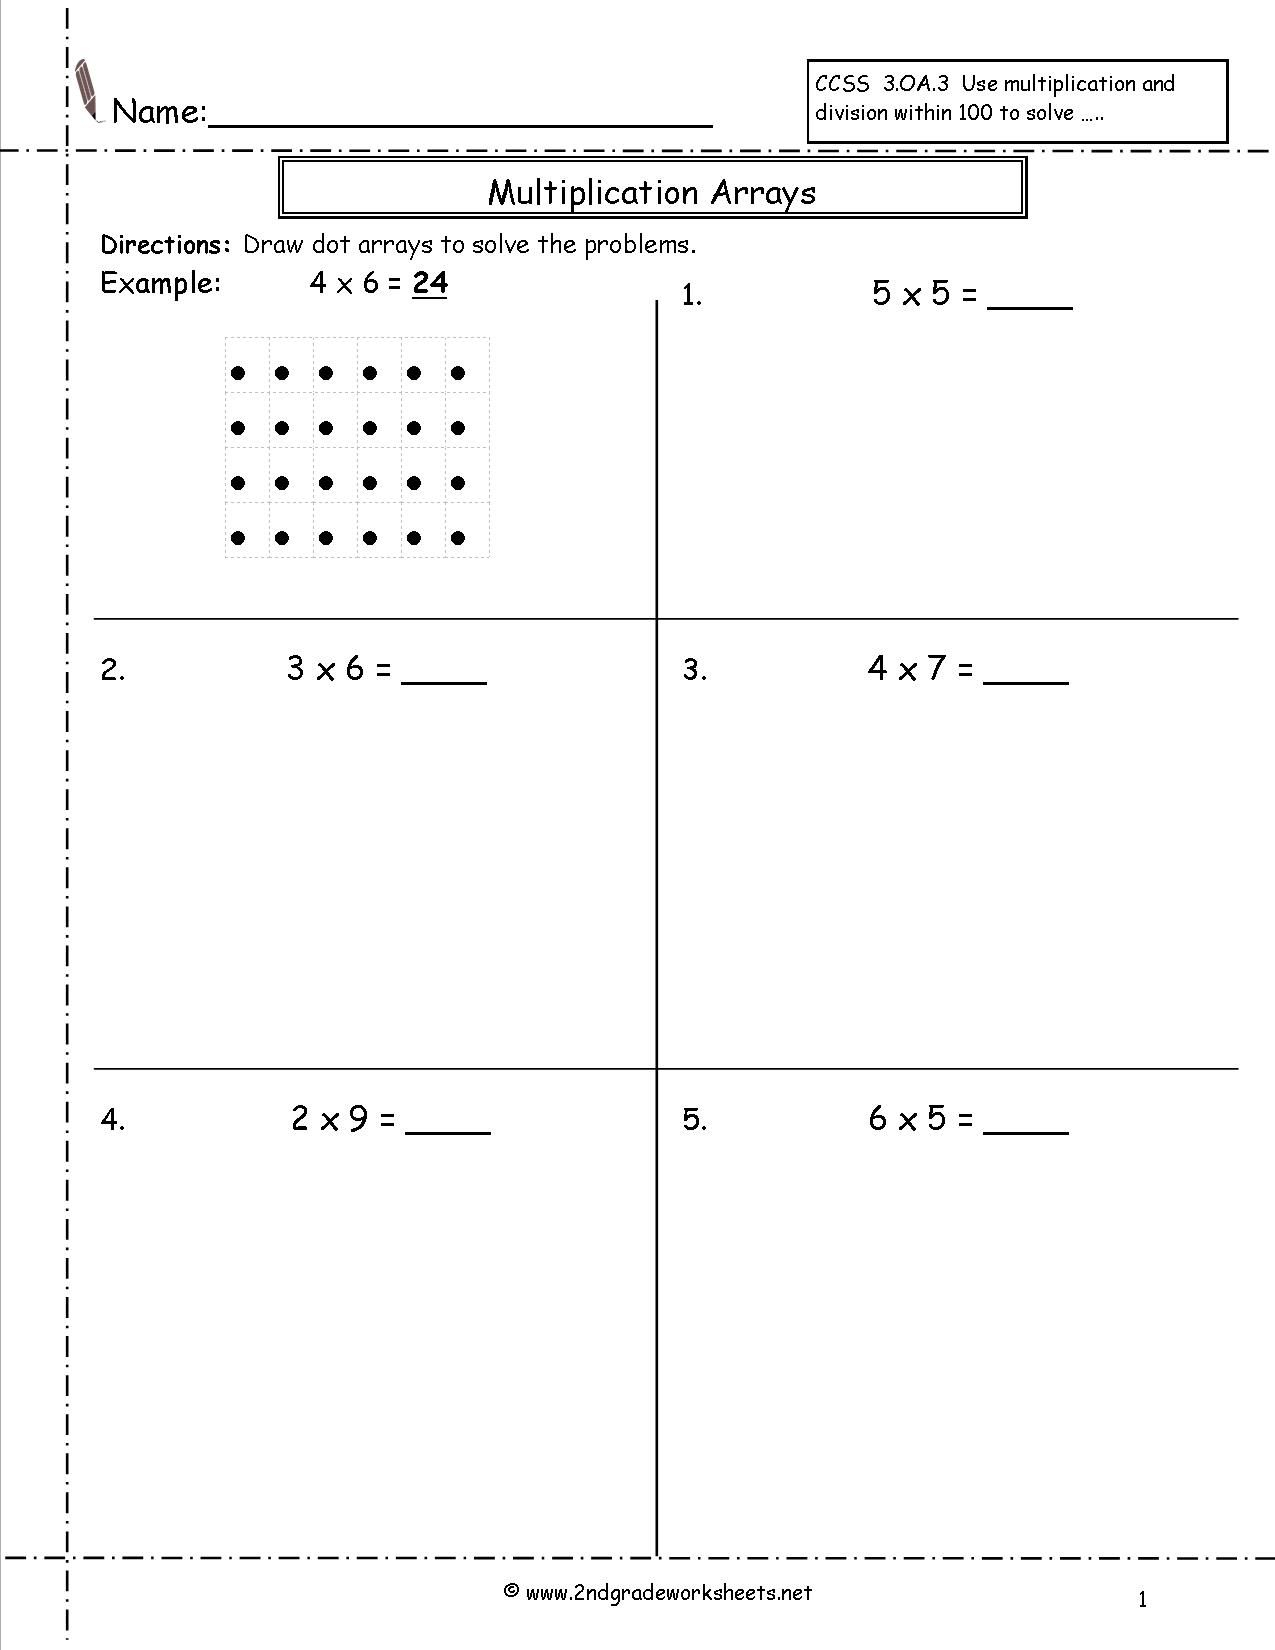 Times Tables Arrays Worksheets